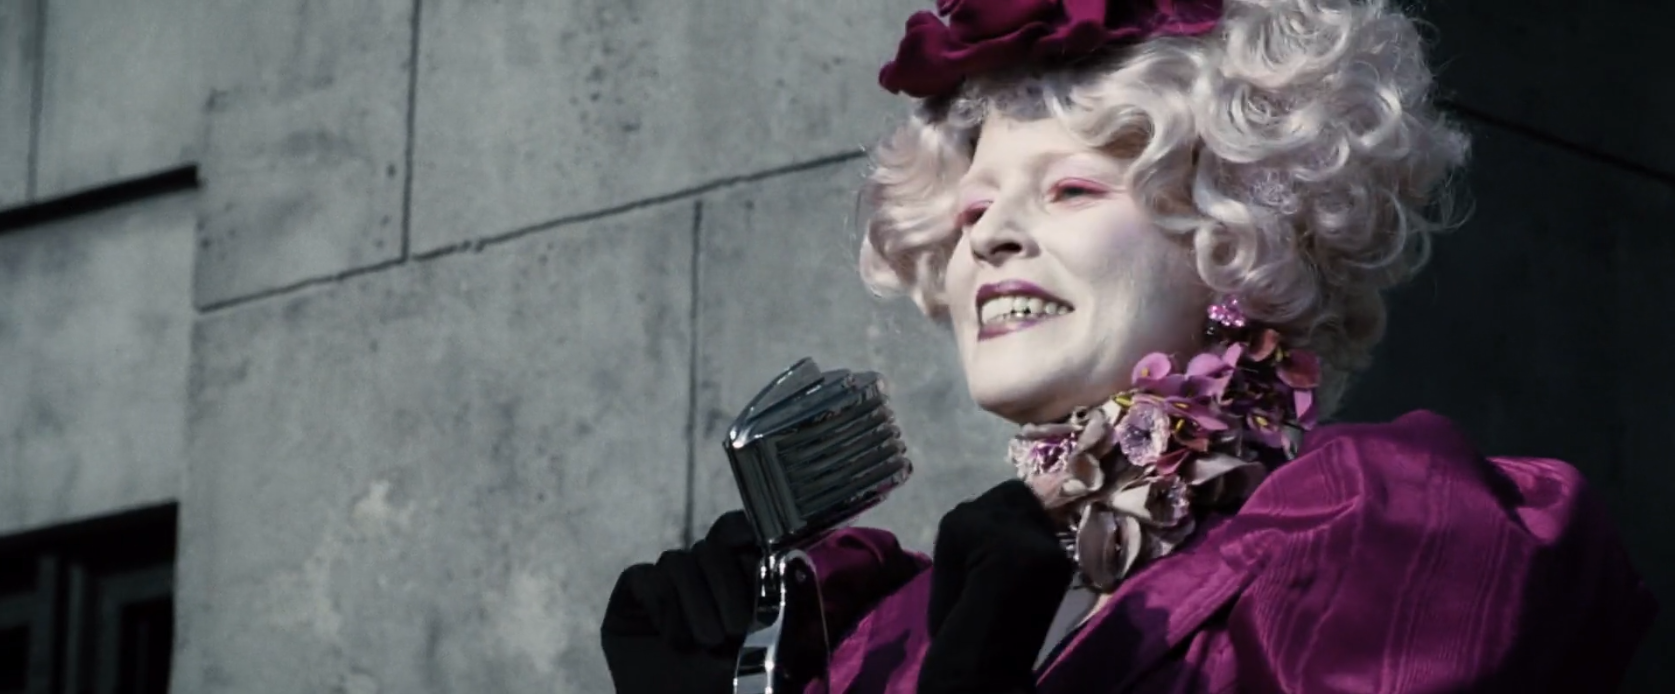 Elizabeth Banks as Effie Trinket in the hunger games fun hair